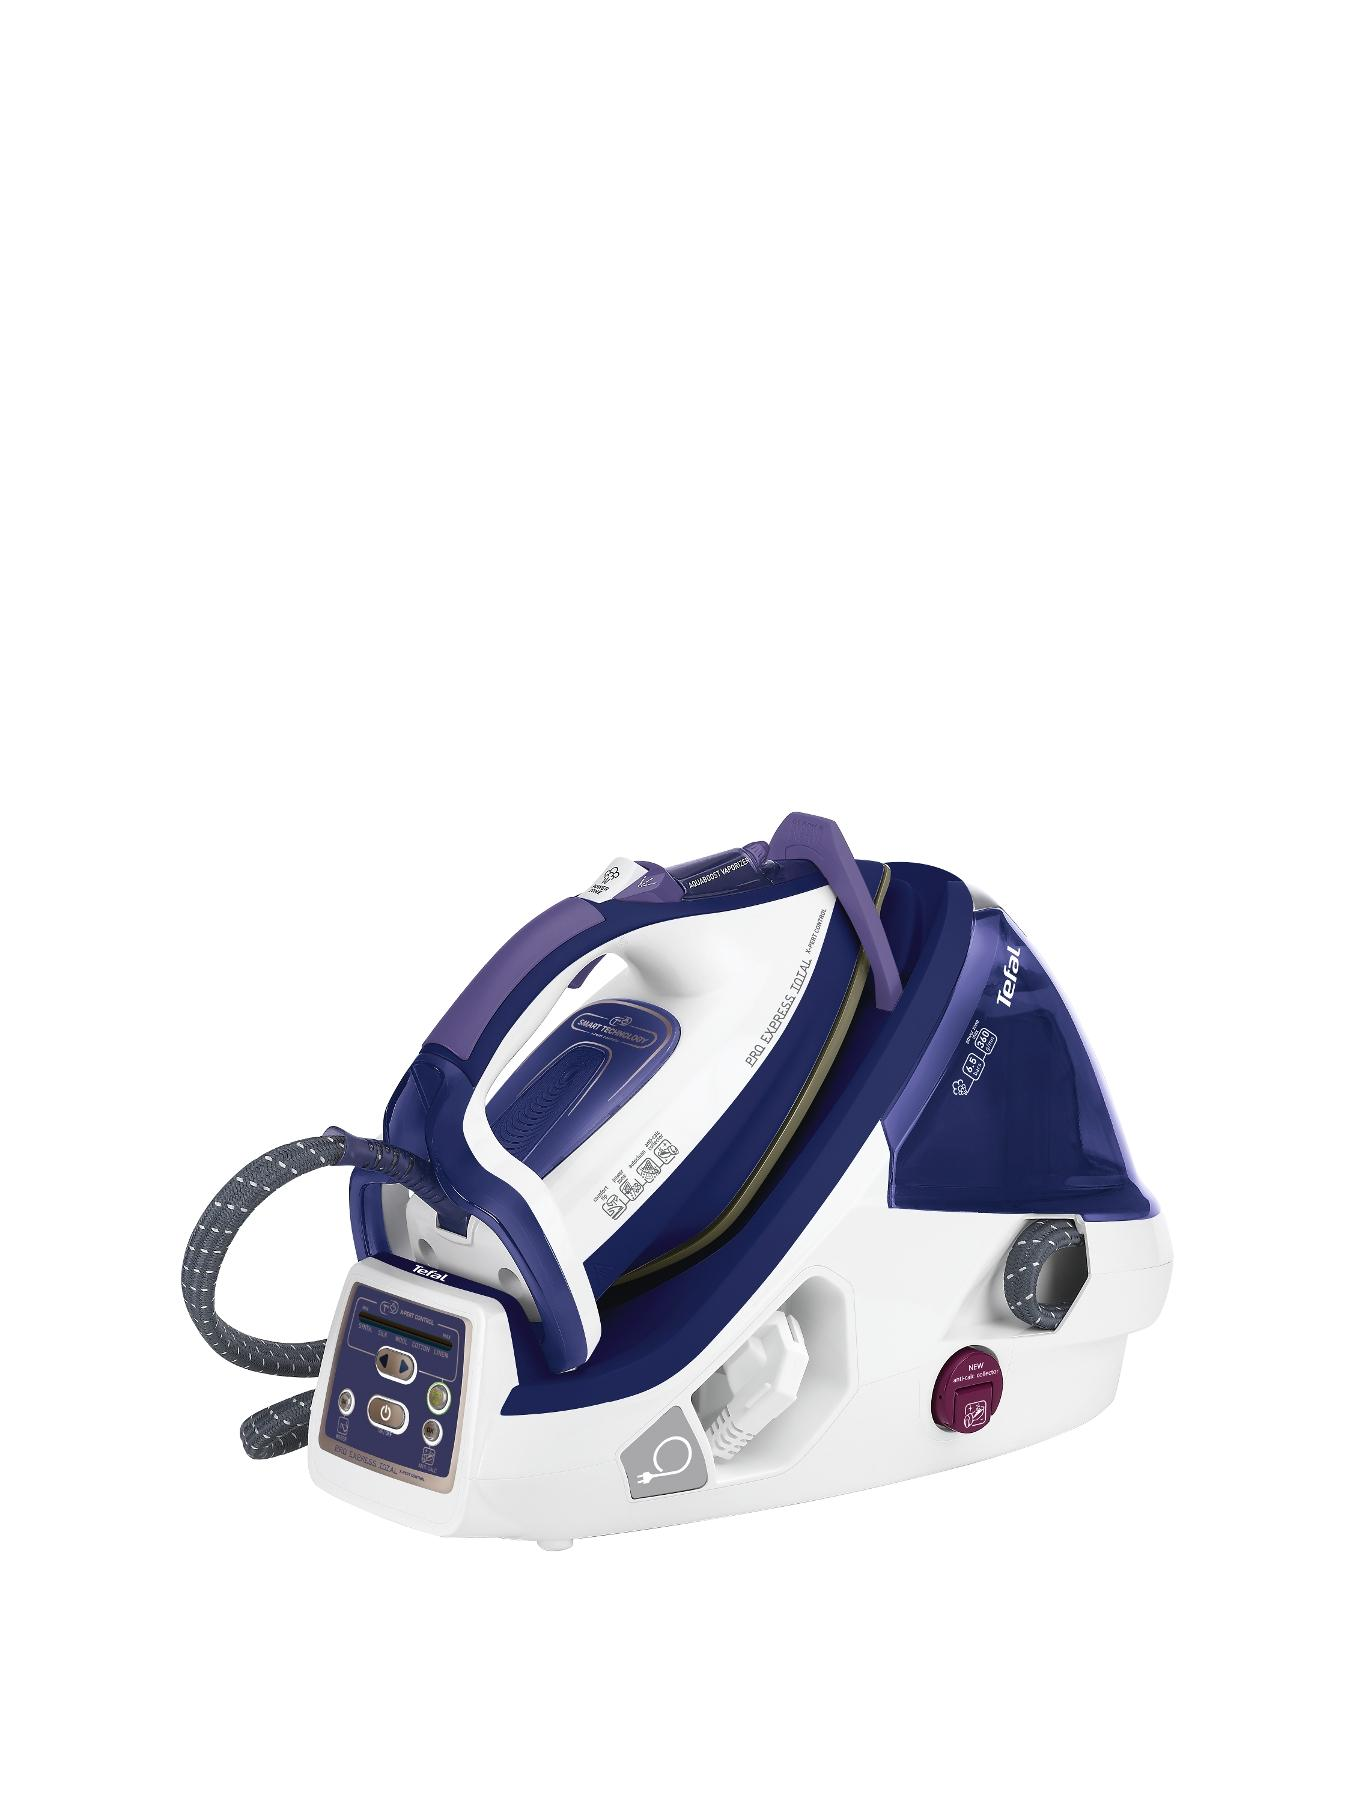 GV8975 Pro Express Total Xpert Control Steam Generator